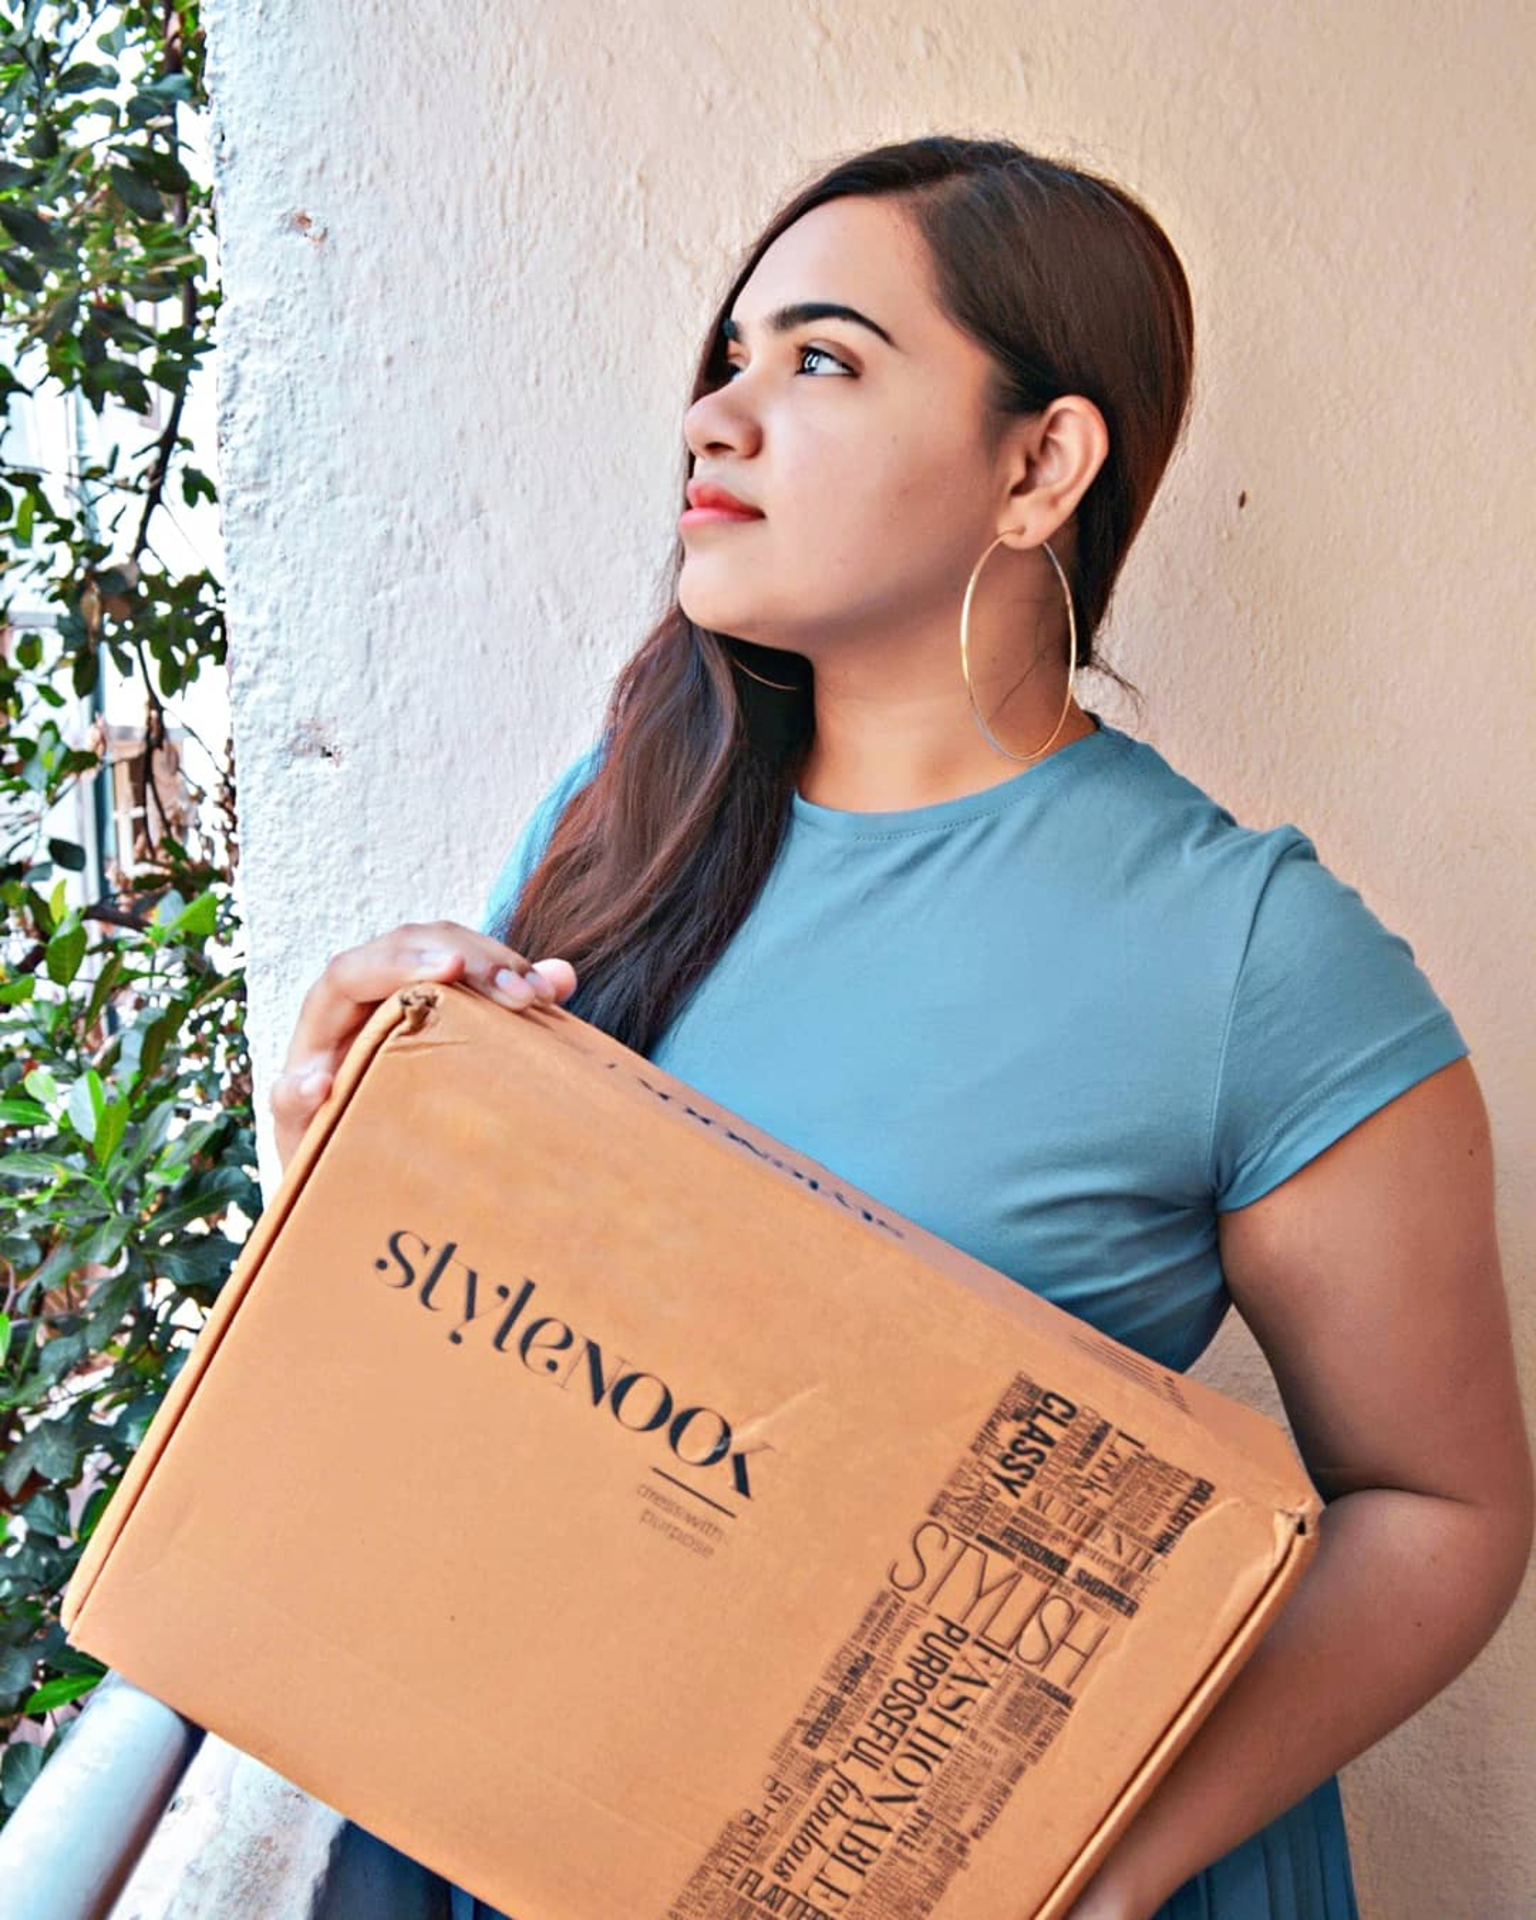 Stylenook Unboxing & Review! image